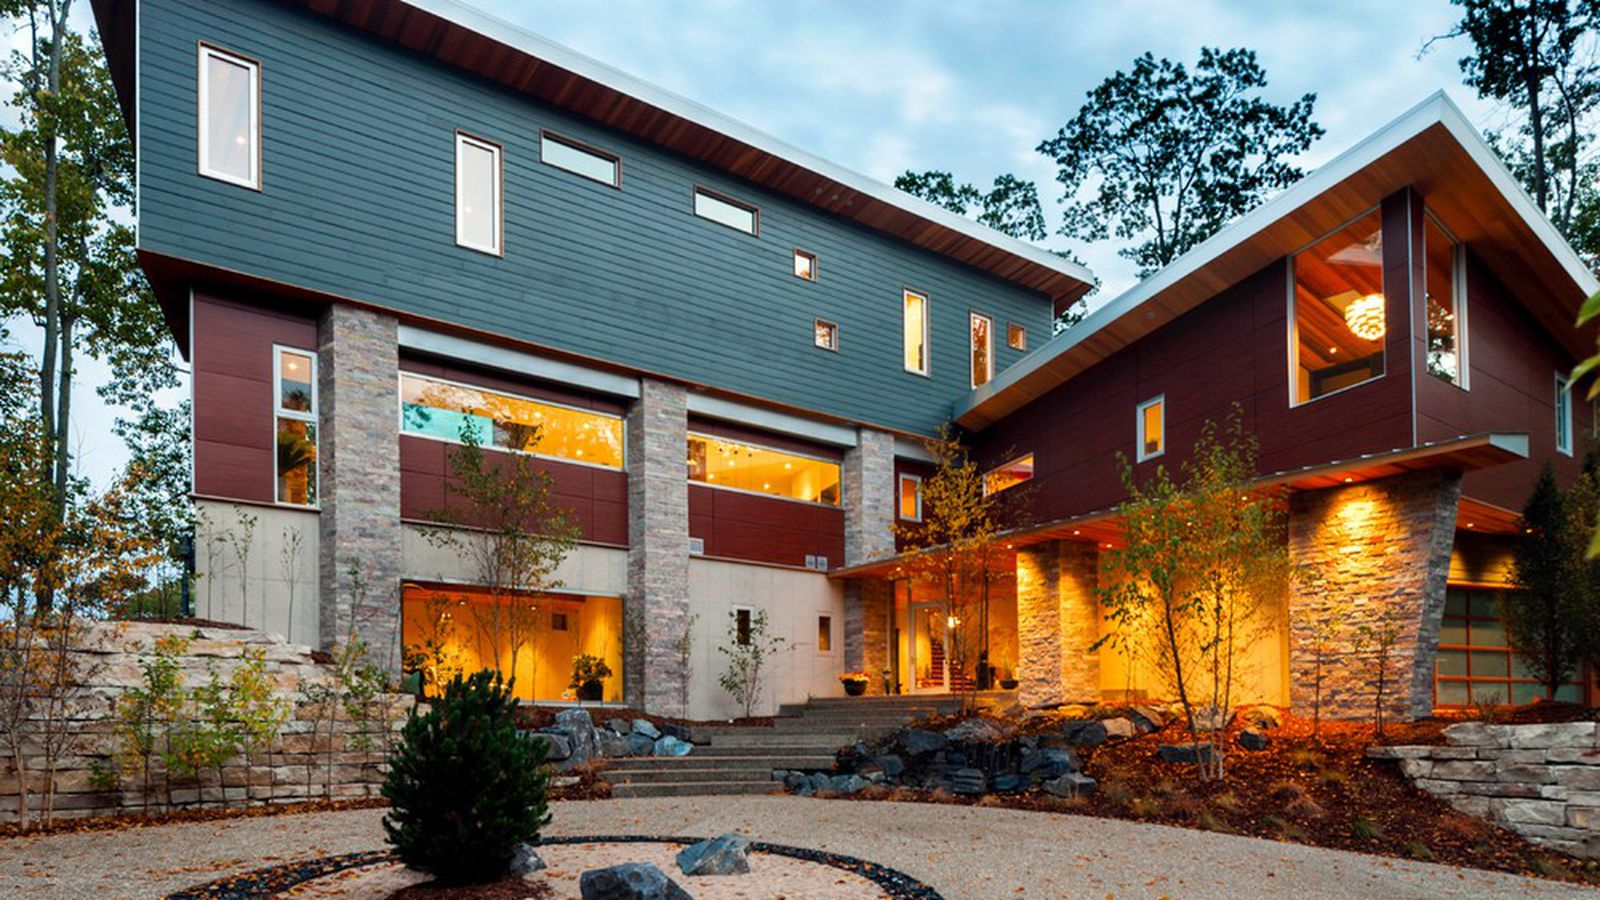 Traverse city s spectacular m 22 house drops price by 649k curbed